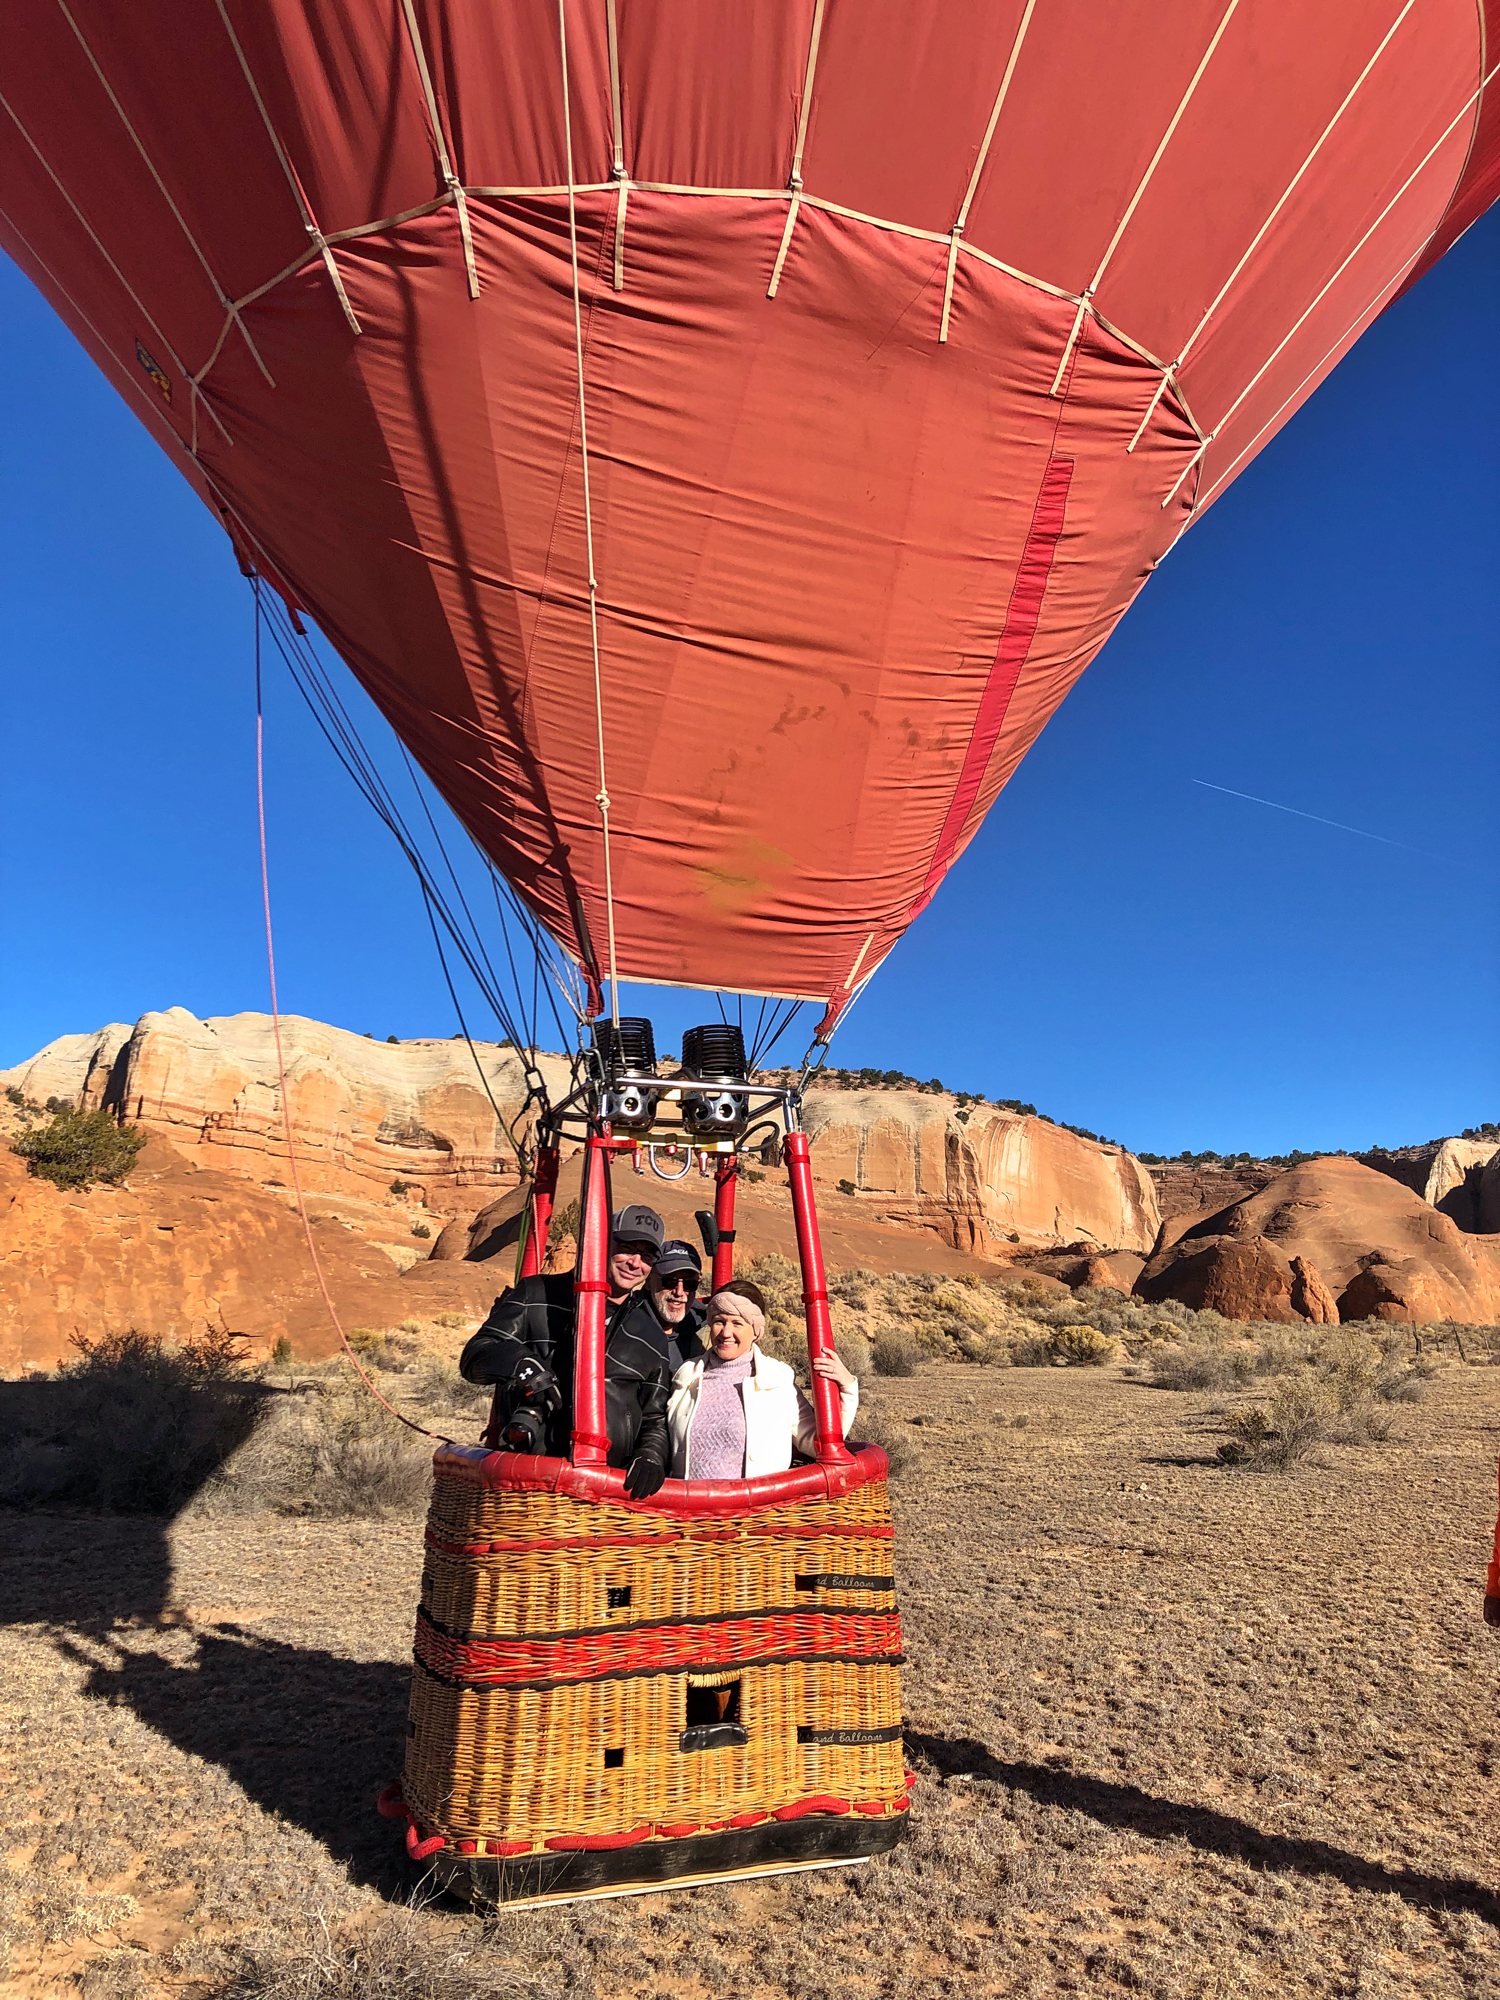 Andrew and Dwan after their hot air balloon ride in gallup, New Mexico